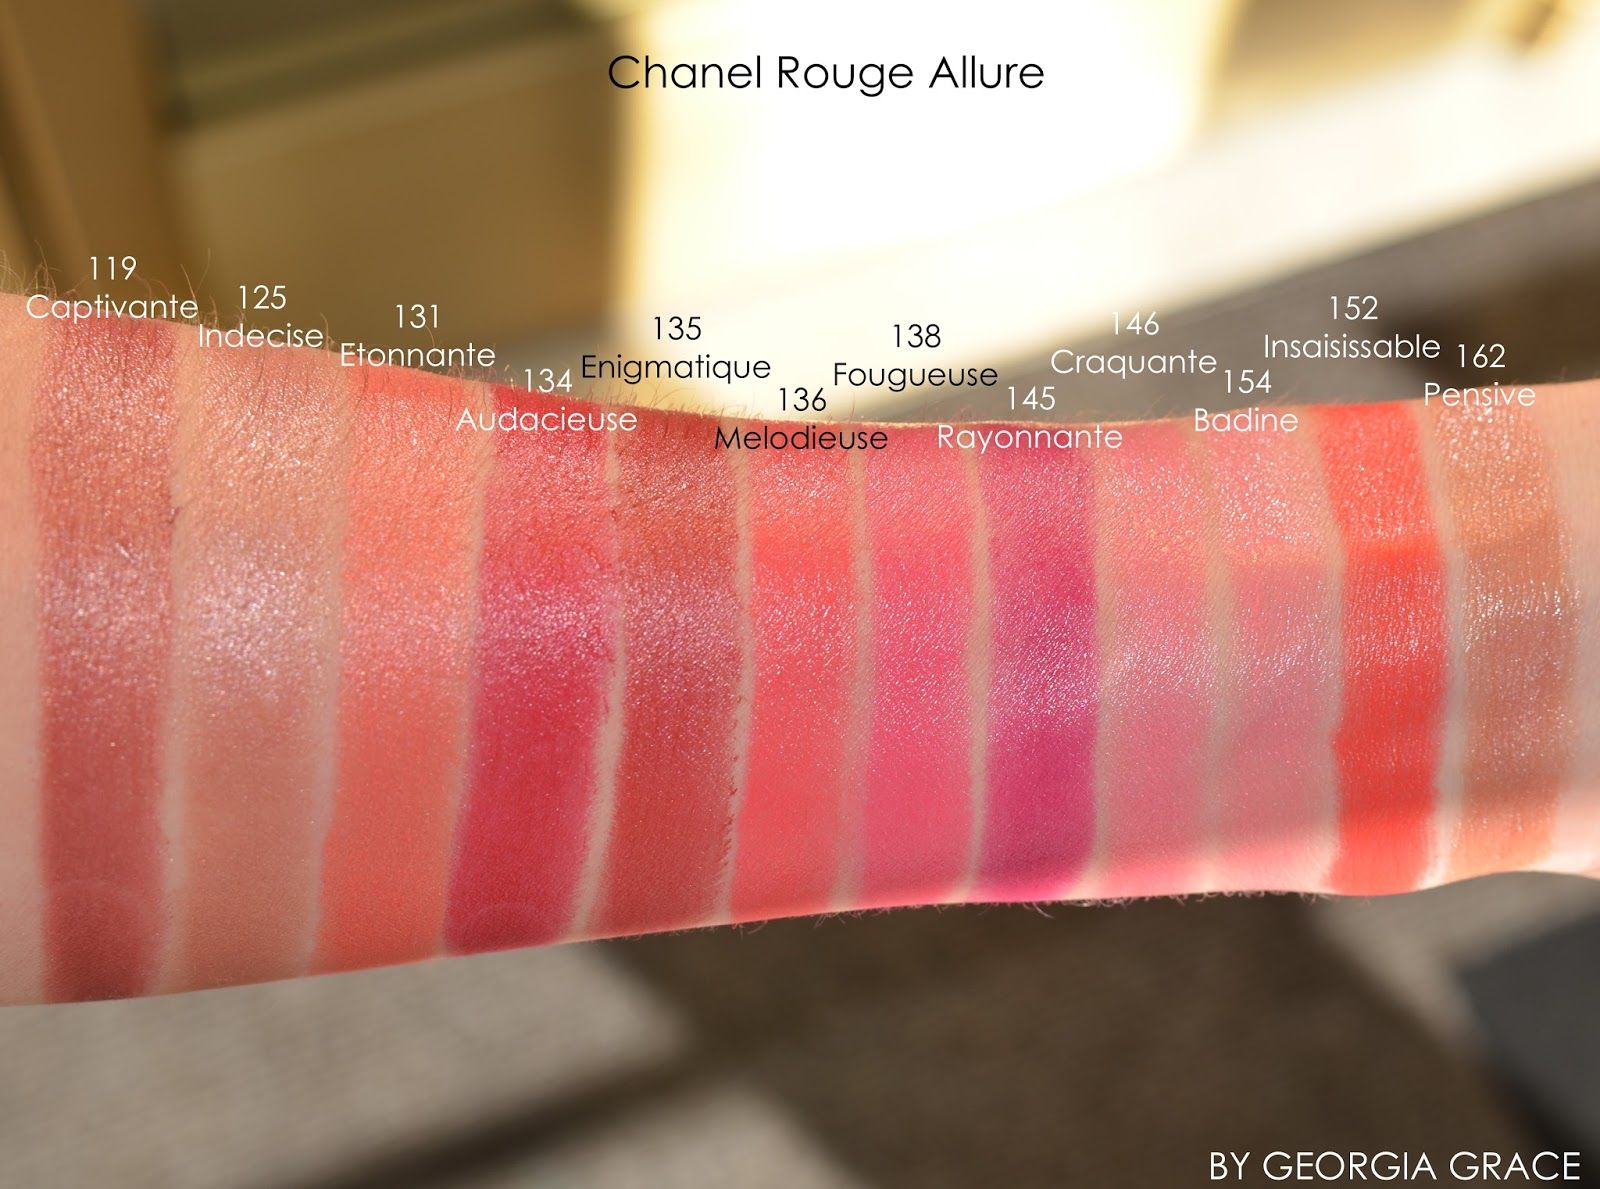 Chanel Rouge Allure Swatches of All Shades | LIPSTICK ...